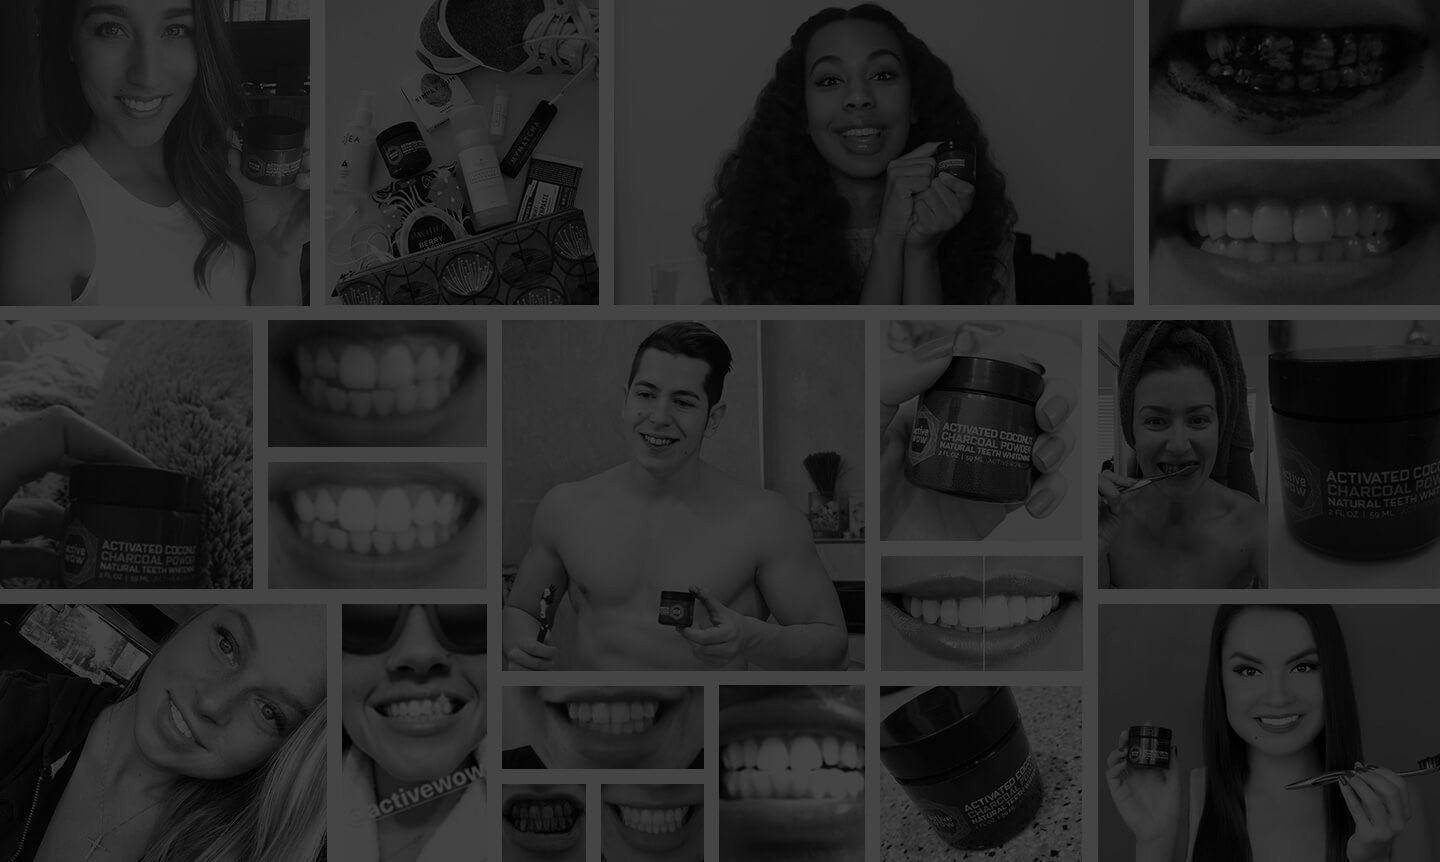 image of people using Active Wow Teeth Whitening on Social Media (instagram, youtube)